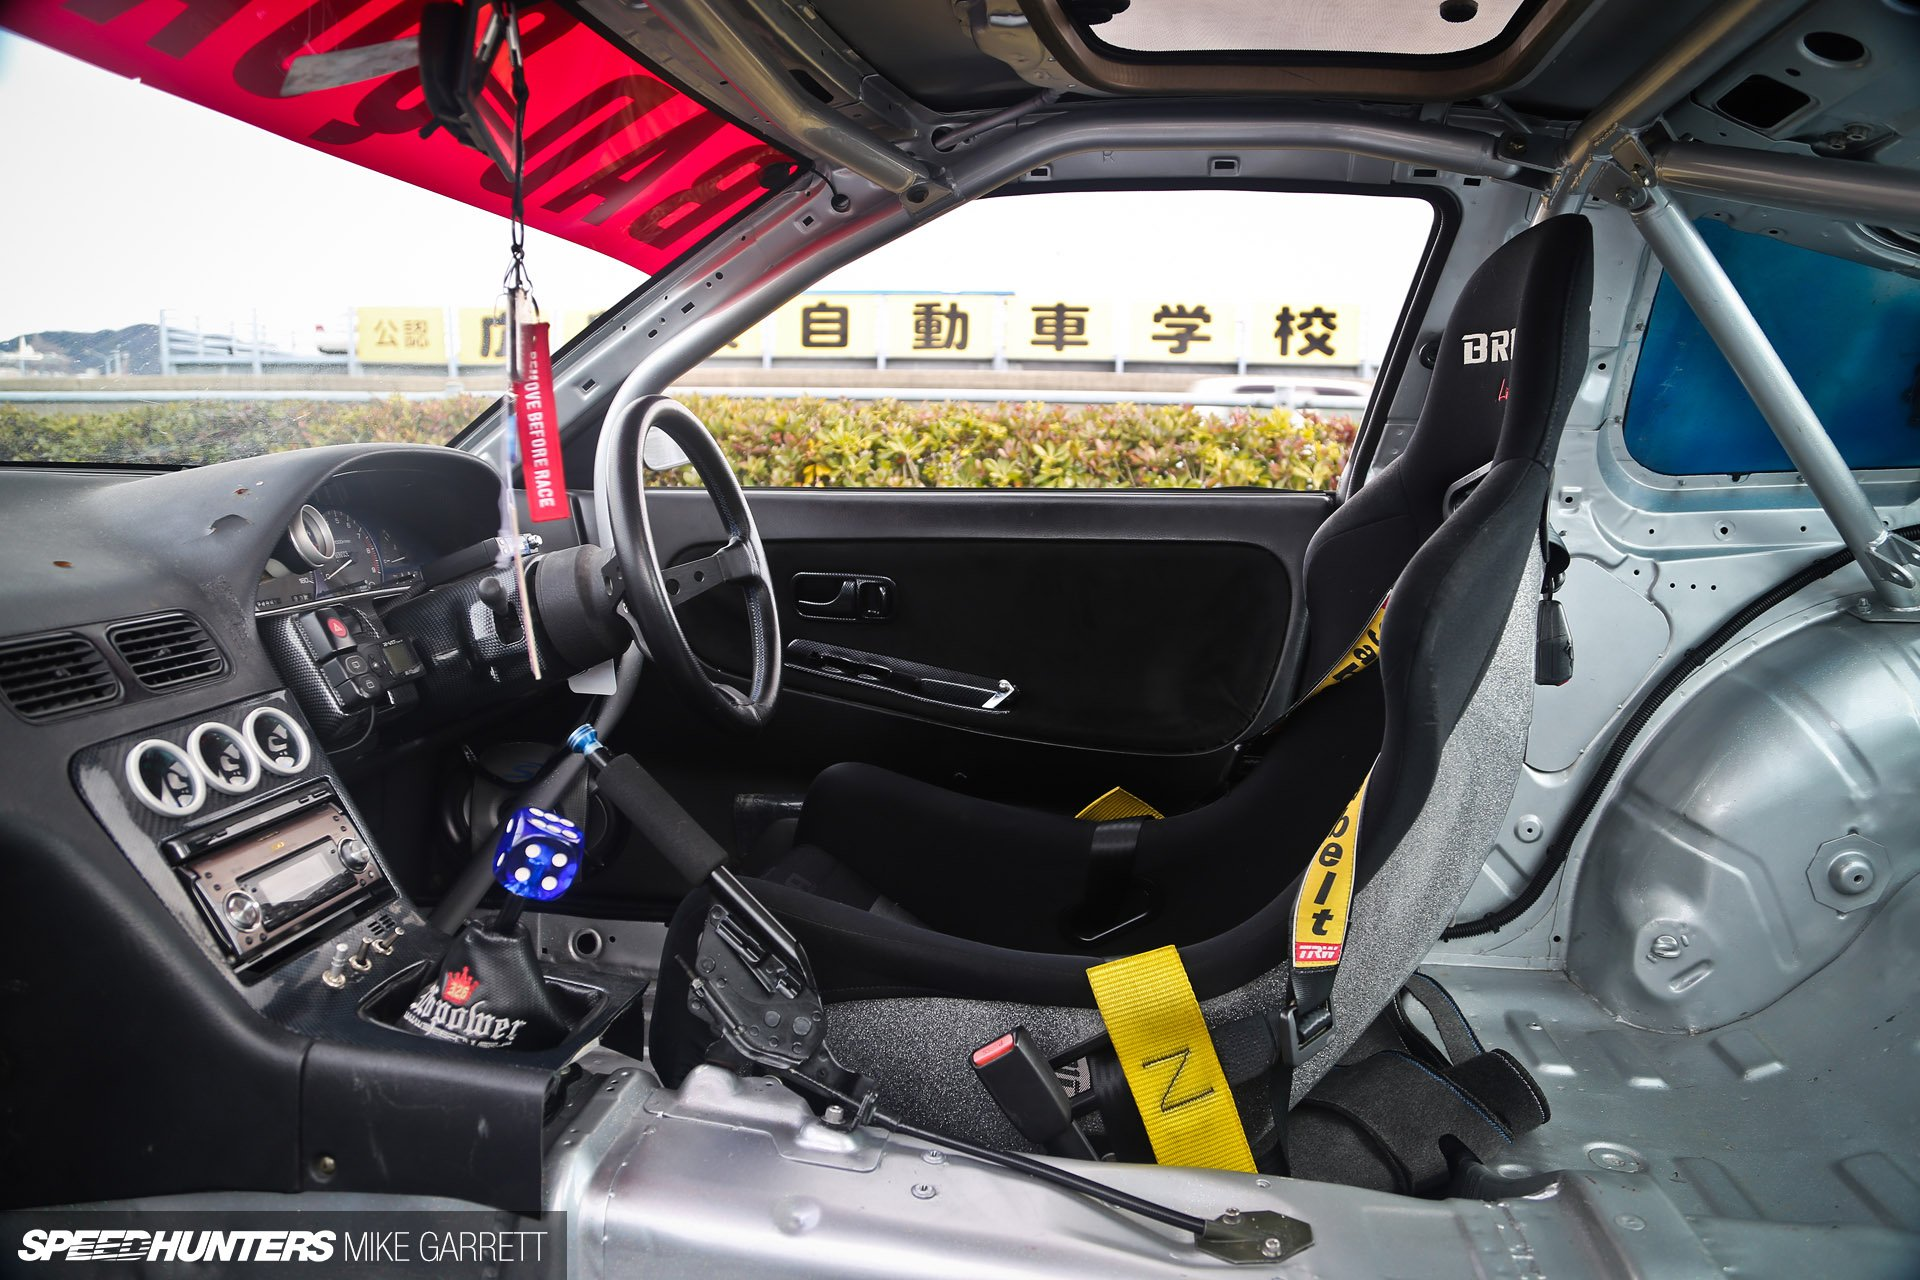 nissan s13 tuning drift race racing interior f wallpaper 1920x1280 311247 wallpaperup. Black Bedroom Furniture Sets. Home Design Ideas